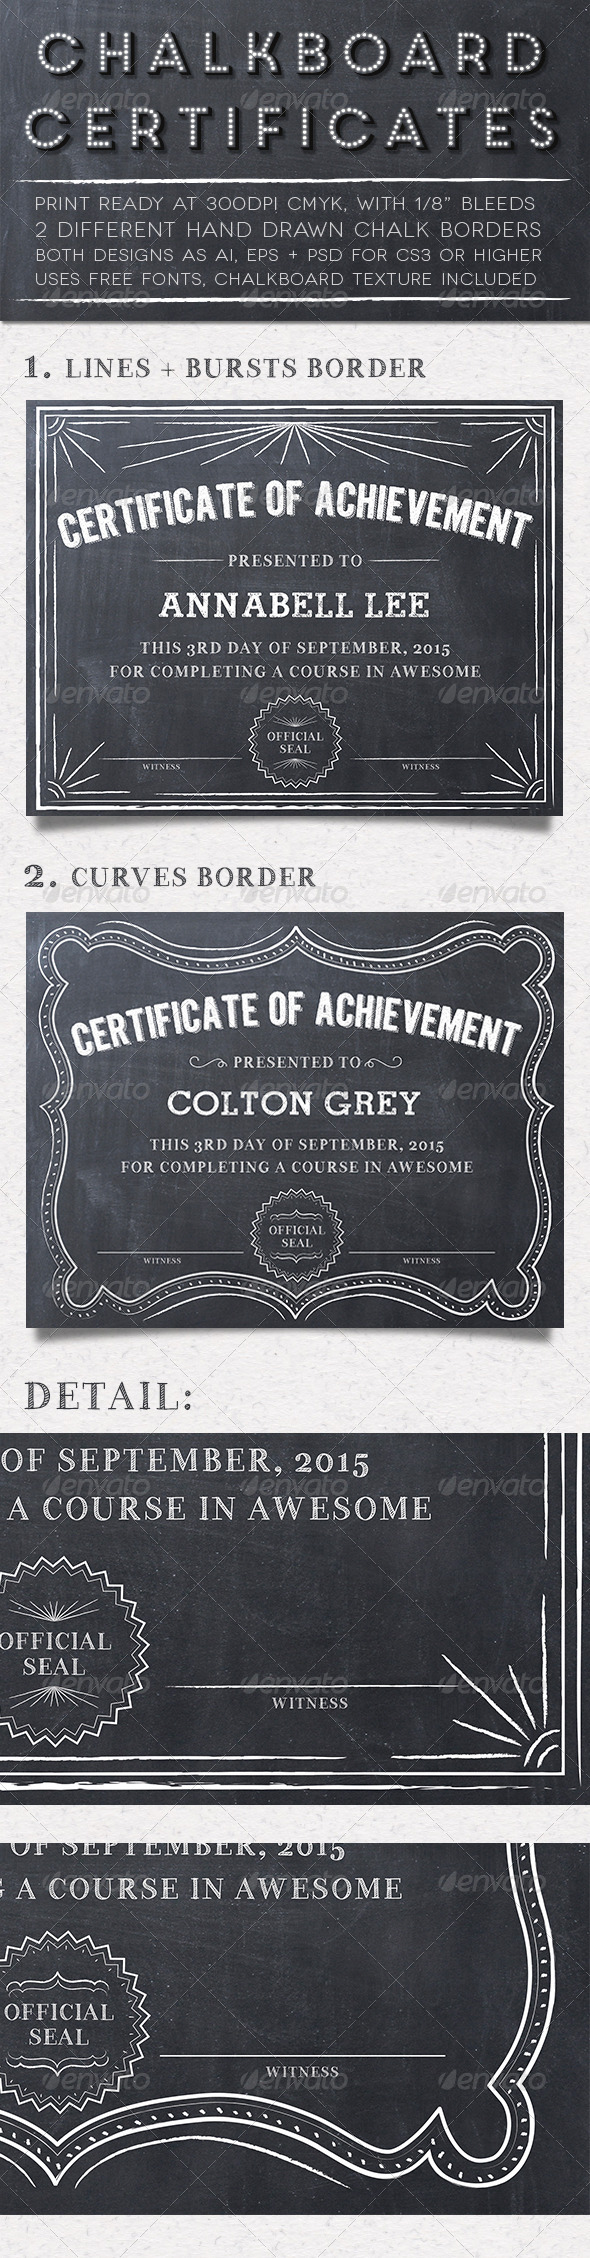 GraphicRiver Chalkboard Certificates 5565189